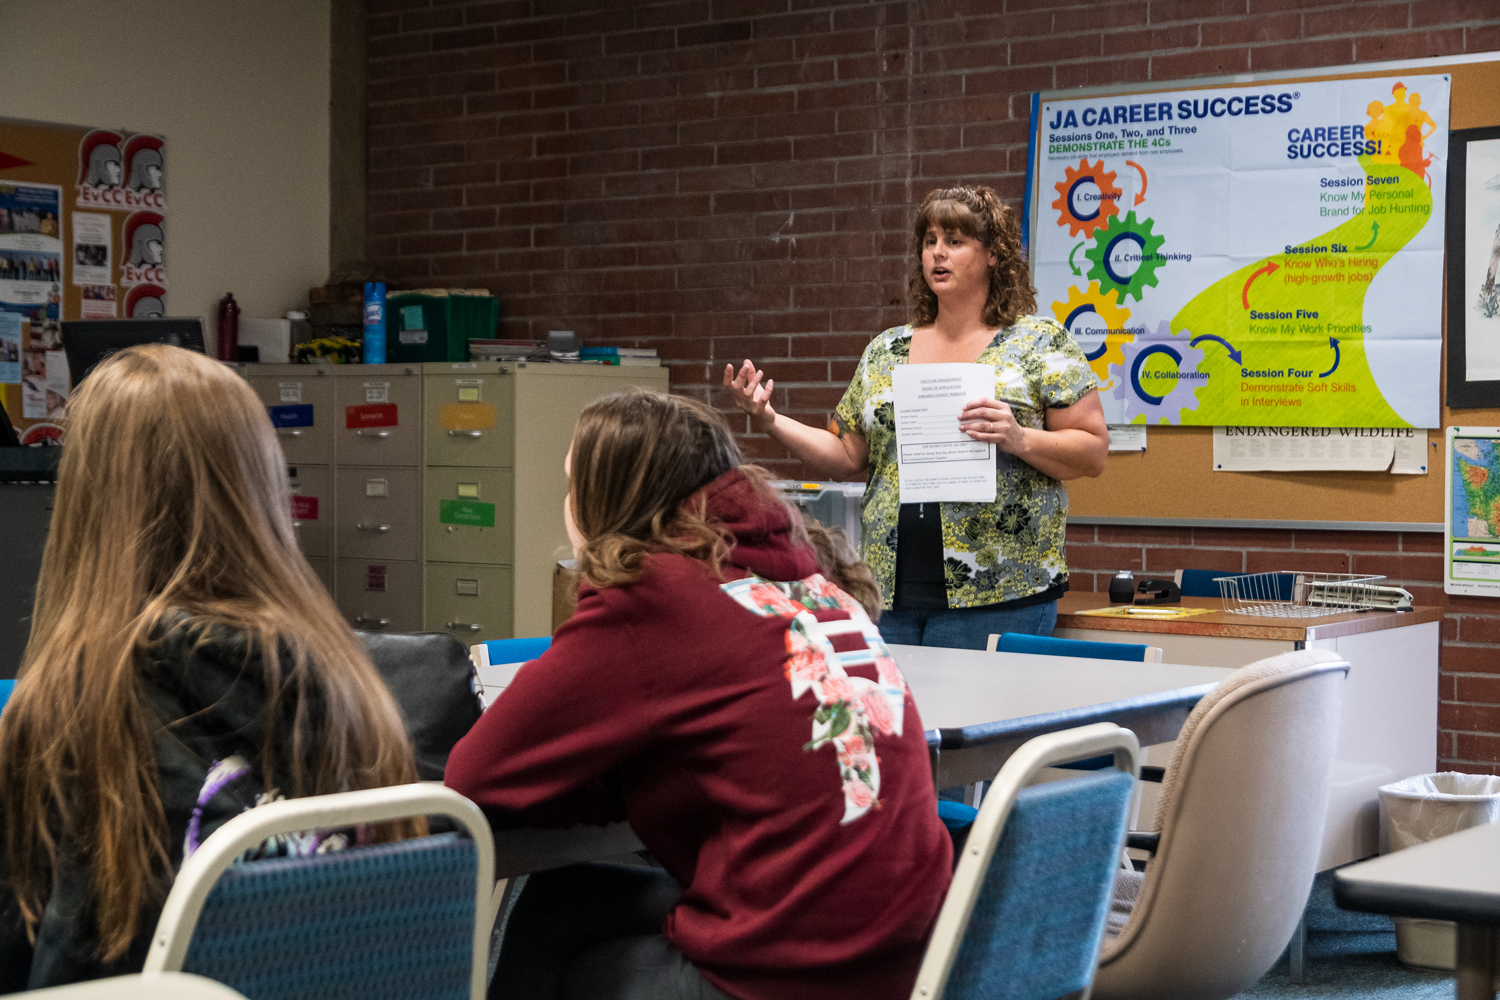 U3 Program Director, Rebecca Hungerford explains the application process for the U3 program to attendees at an informational meeting in Rainier Hall, room 217. Hungerford described the program as a dual credit program where students can earn a high school diploma and an associate's degree at the same time.